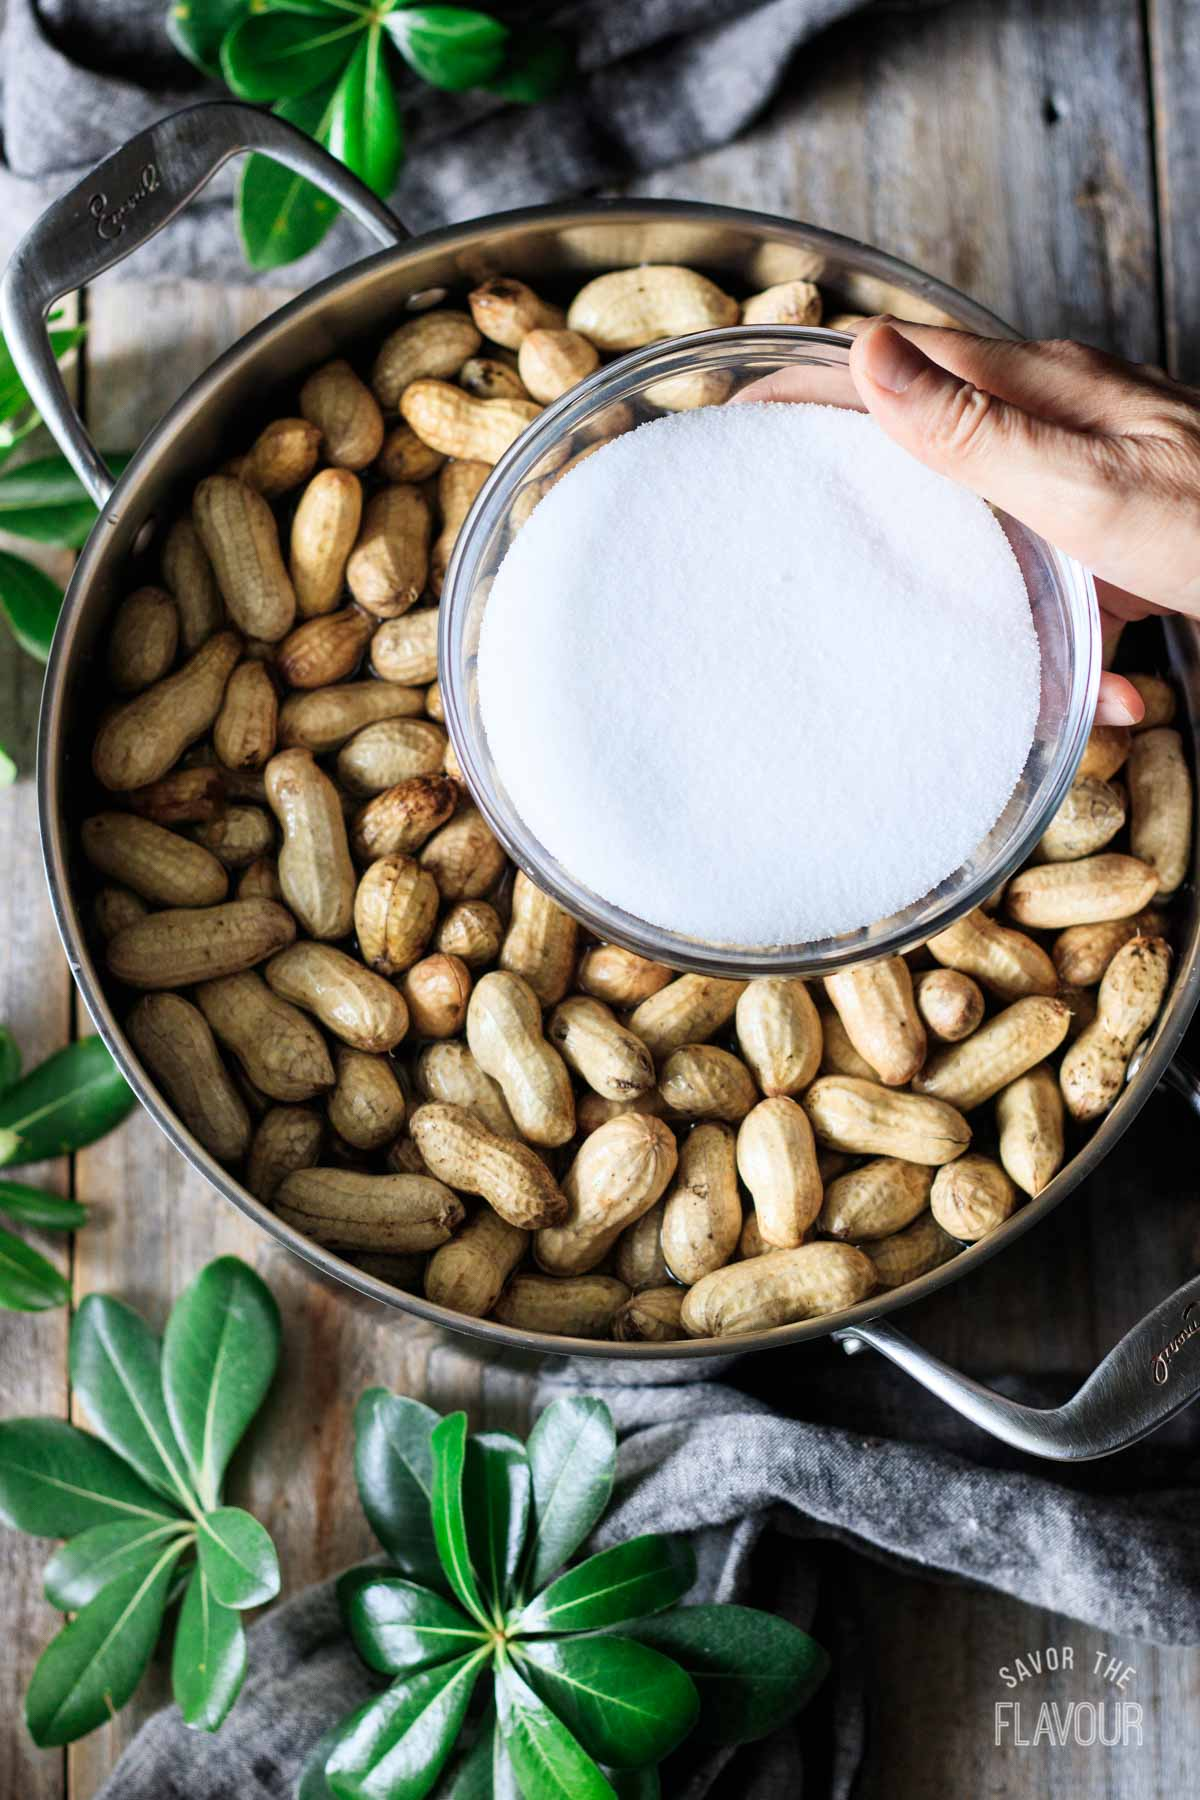 adding salt to a pot of boiled peanuts